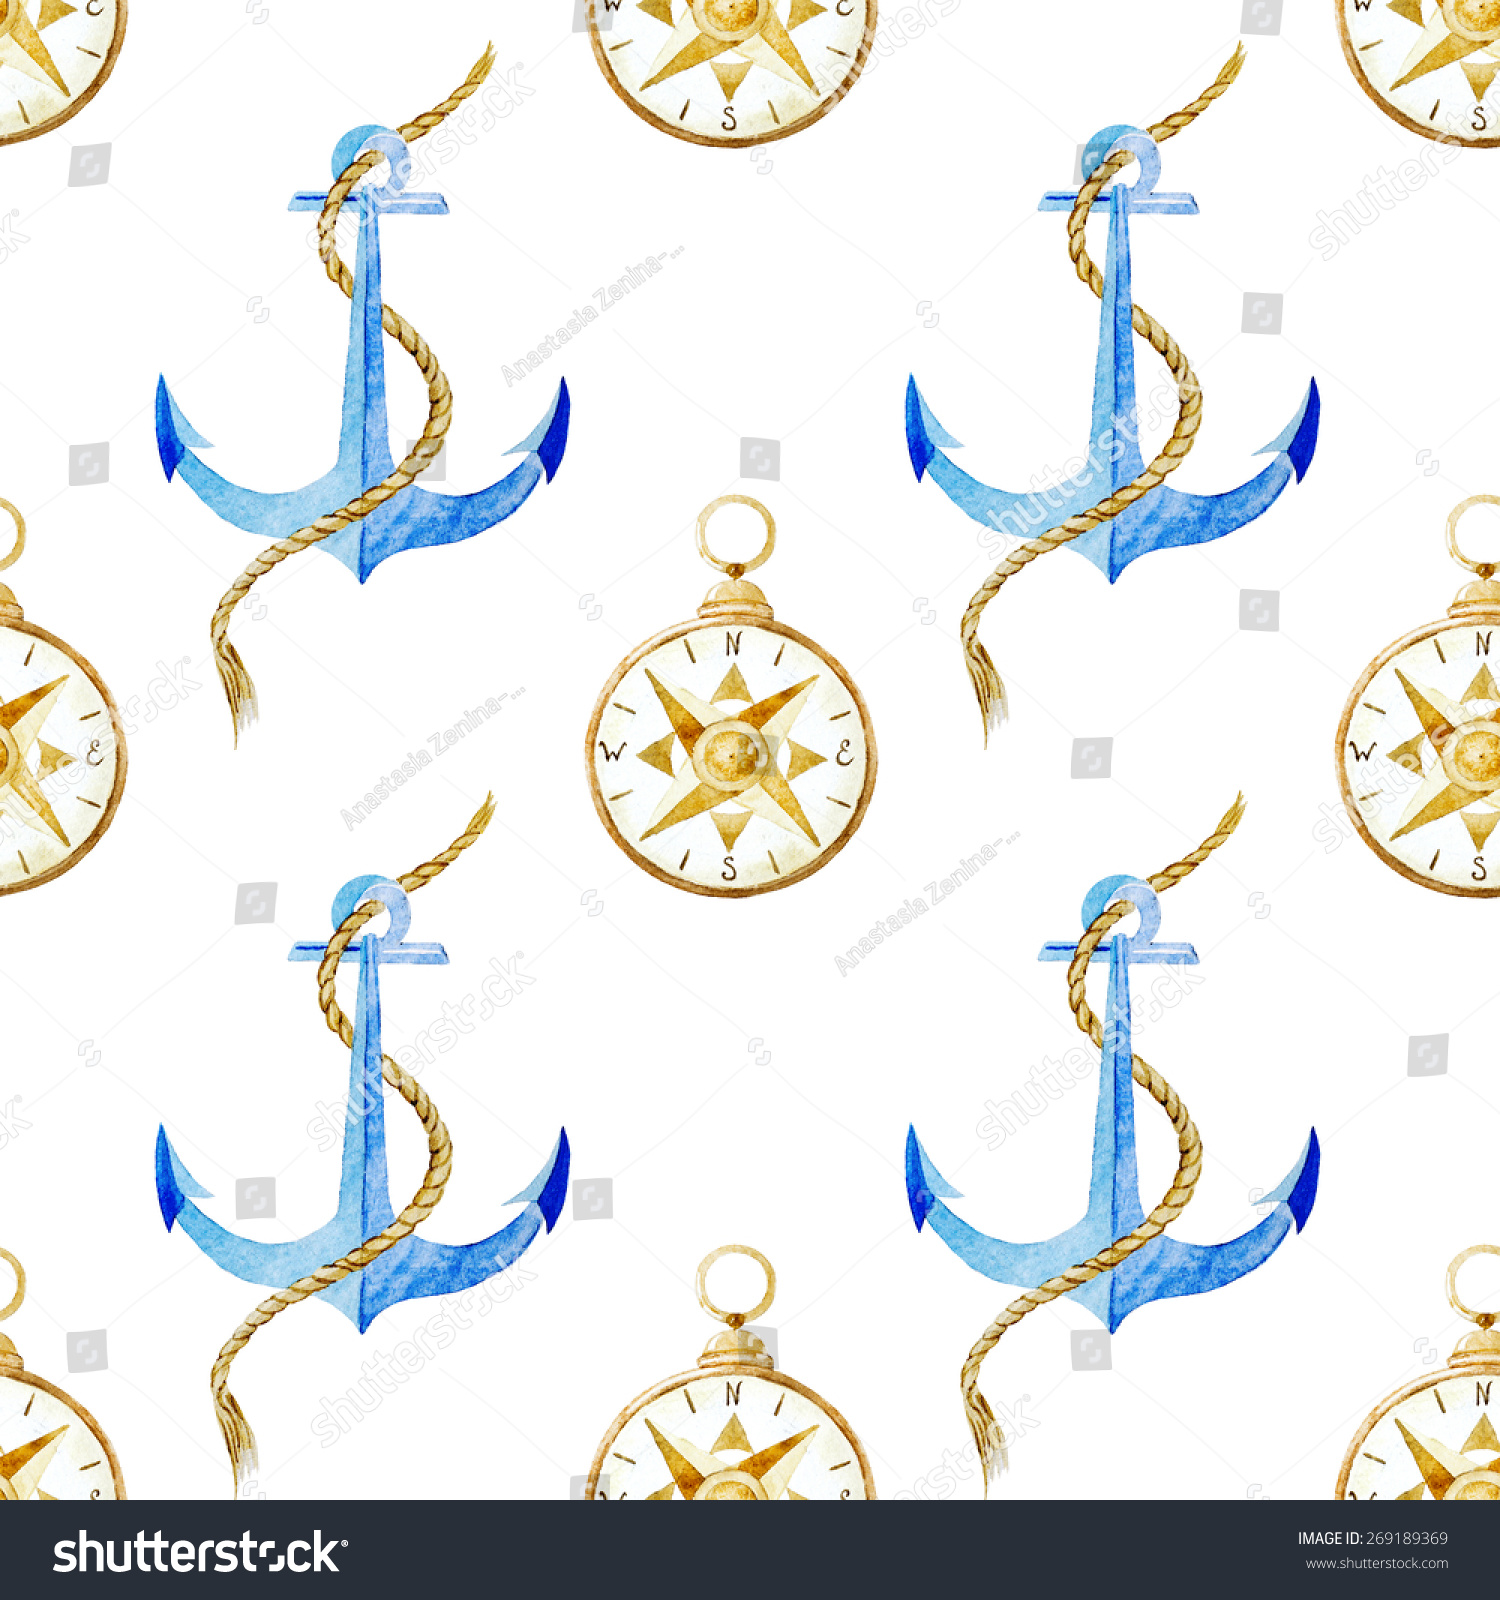 Watercolor, anchor, wallpaper, background, pattern, compass.